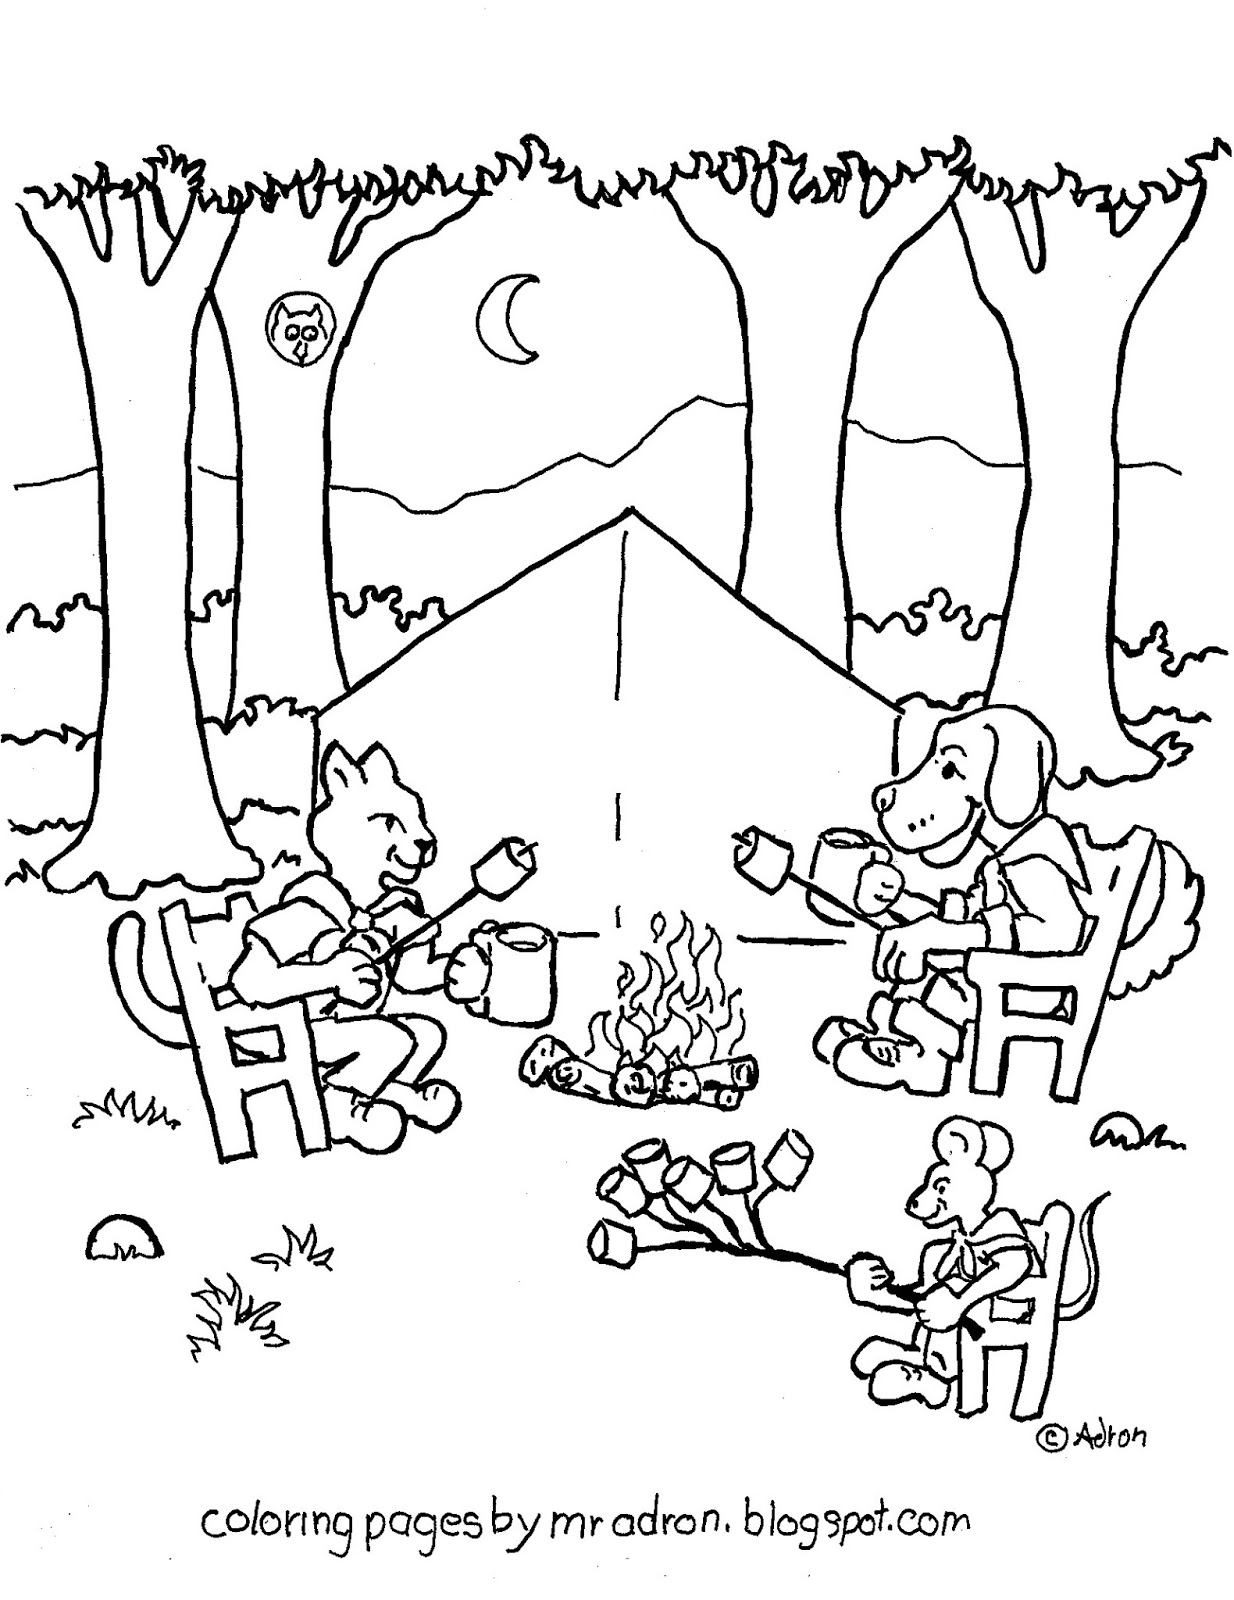 coloring pages for kids by mr adron animal friends camp and roast marshmallows printable. Black Bedroom Furniture Sets. Home Design Ideas